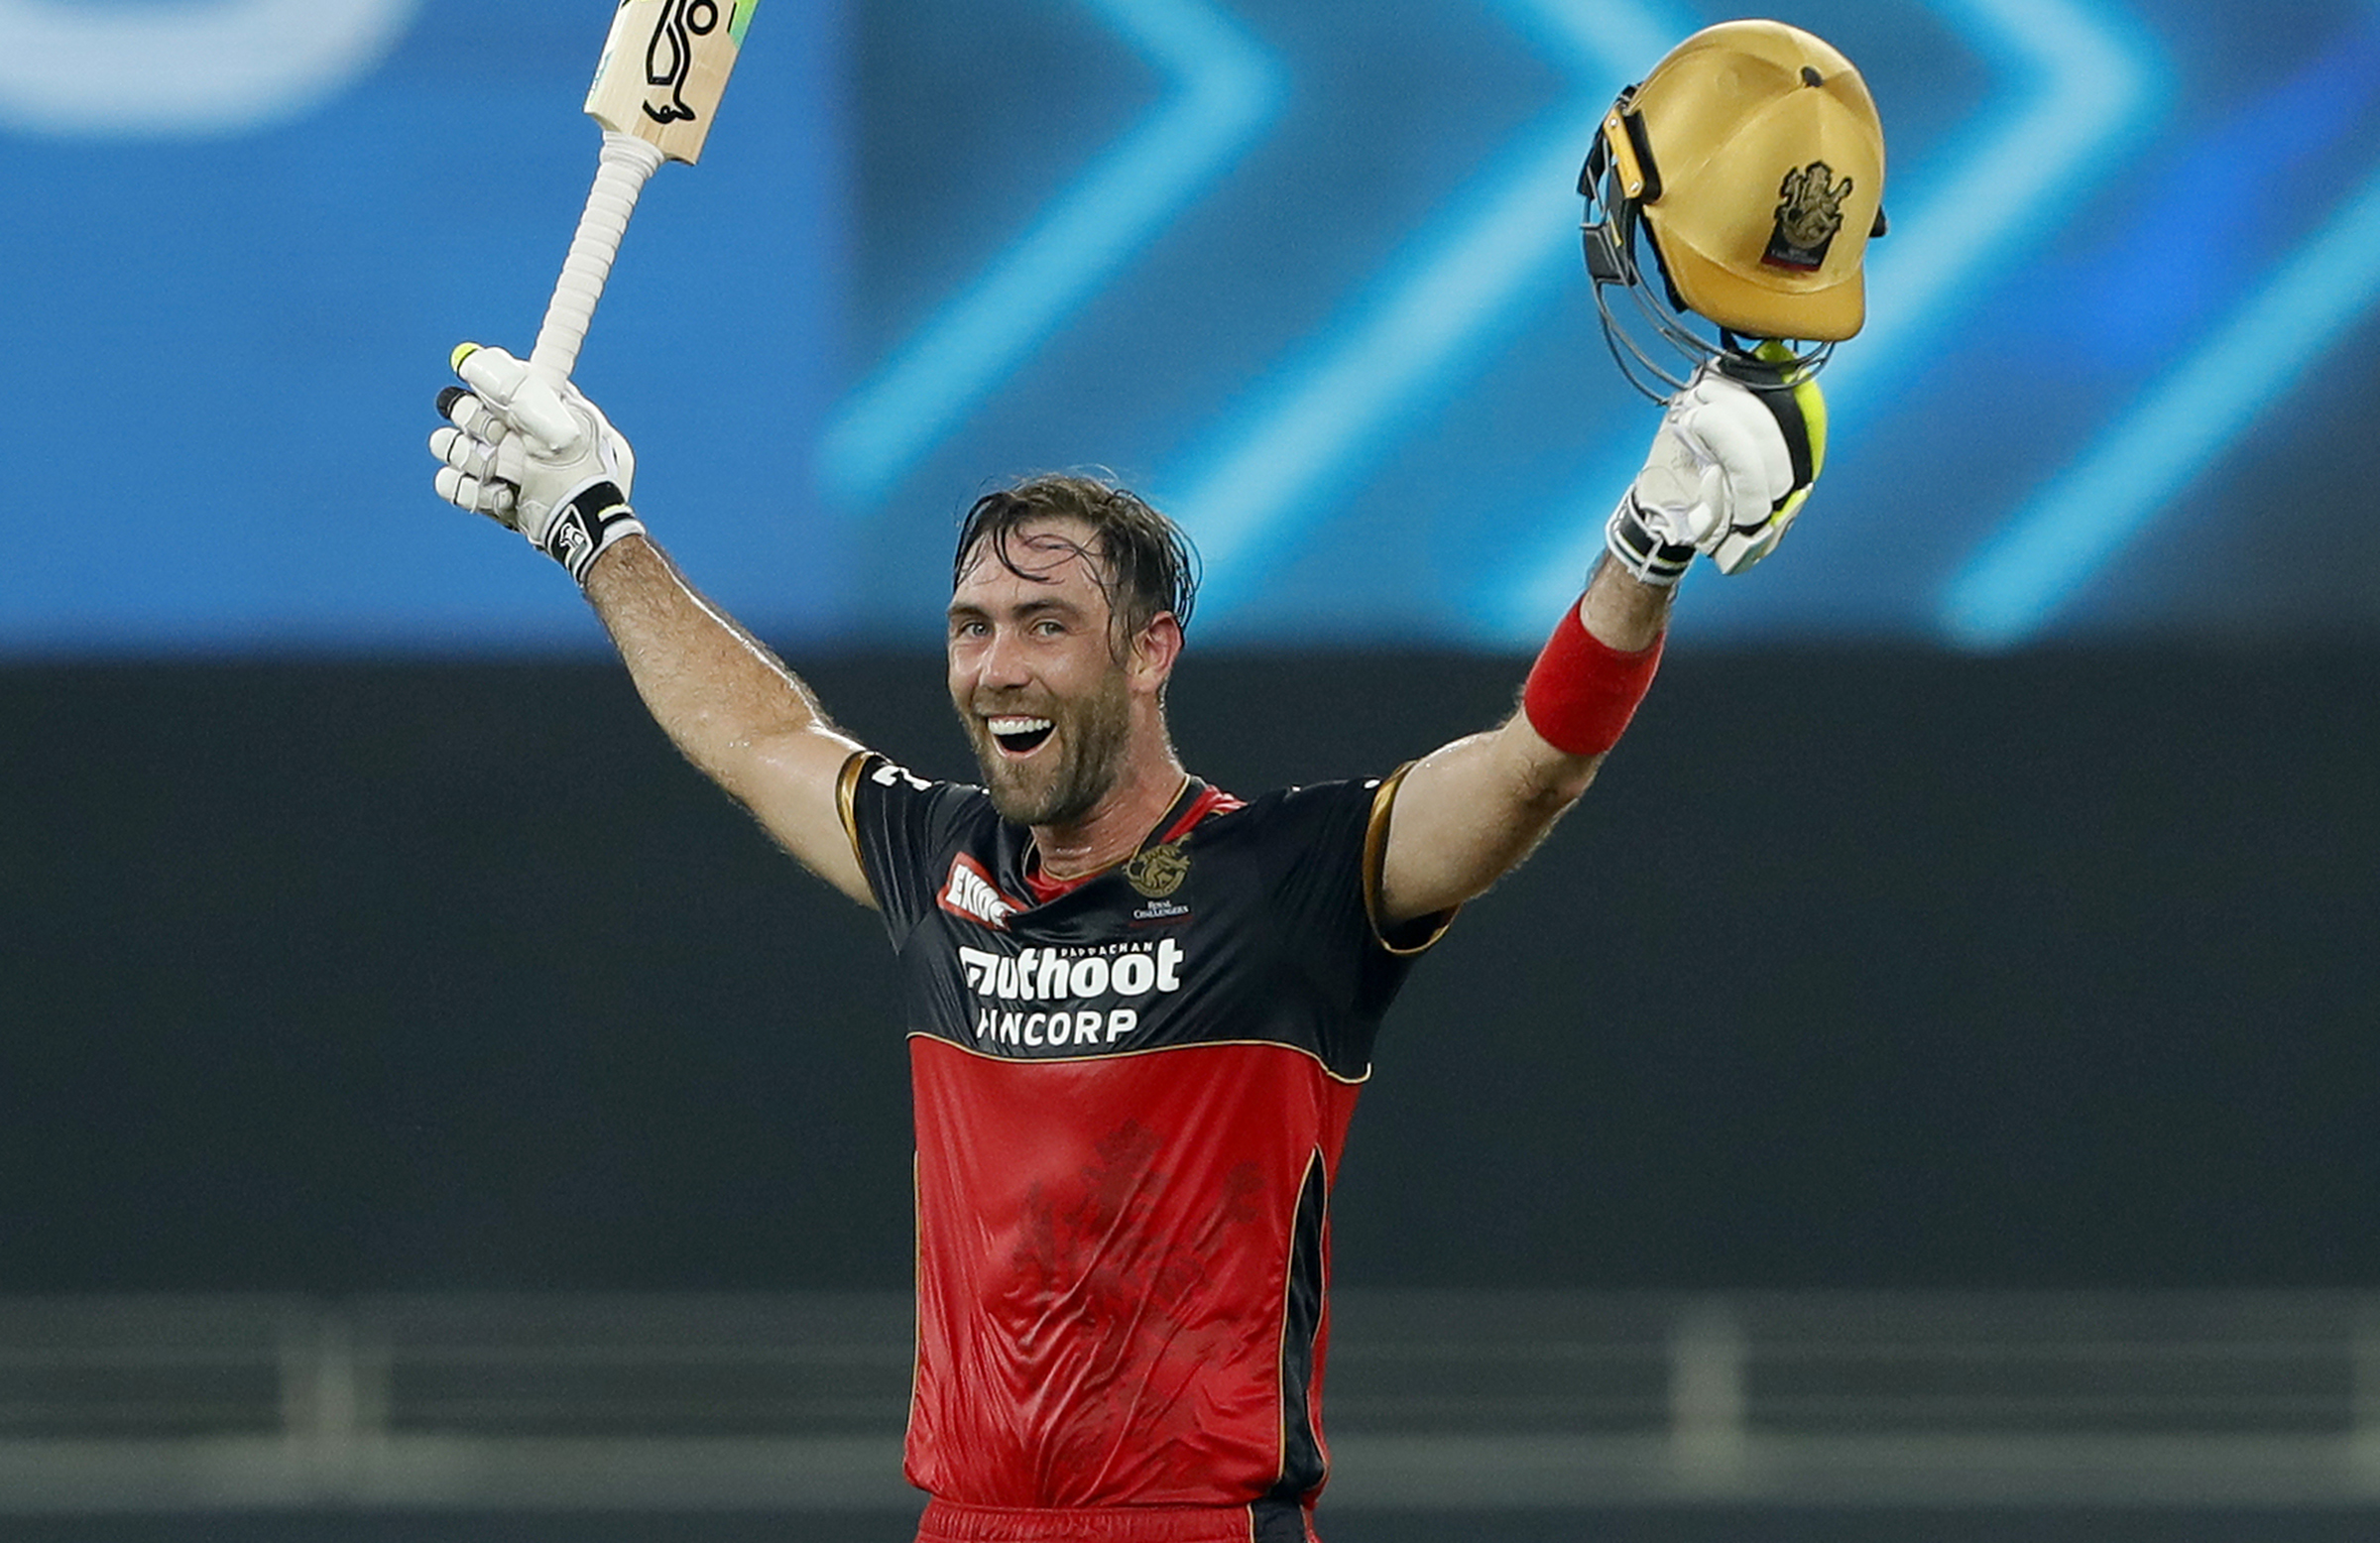 Maxwell has hit 290 runs at a strike-rate of 143.56 in the second part of the IPL // BCCI/IPL